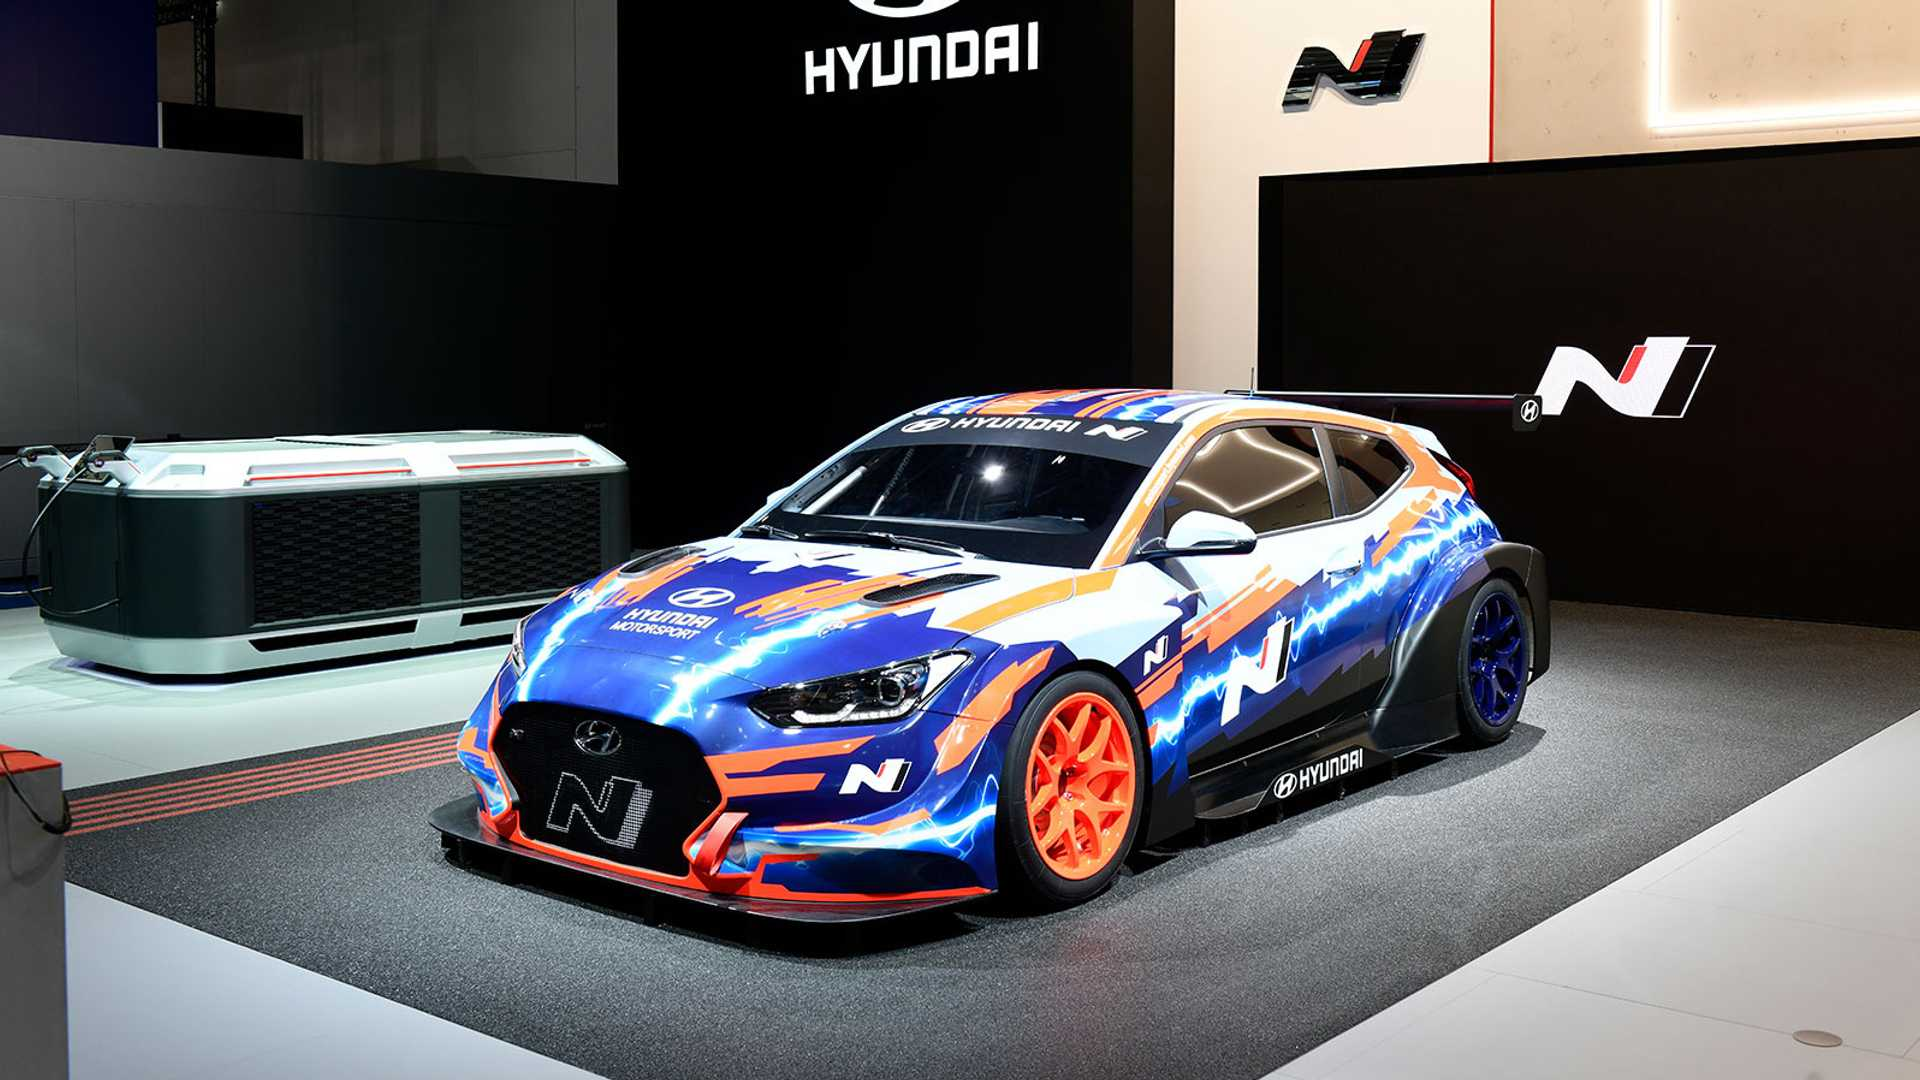 Quick Look At The Hyundai Veloster N ETCR At 2019 IAA: Video